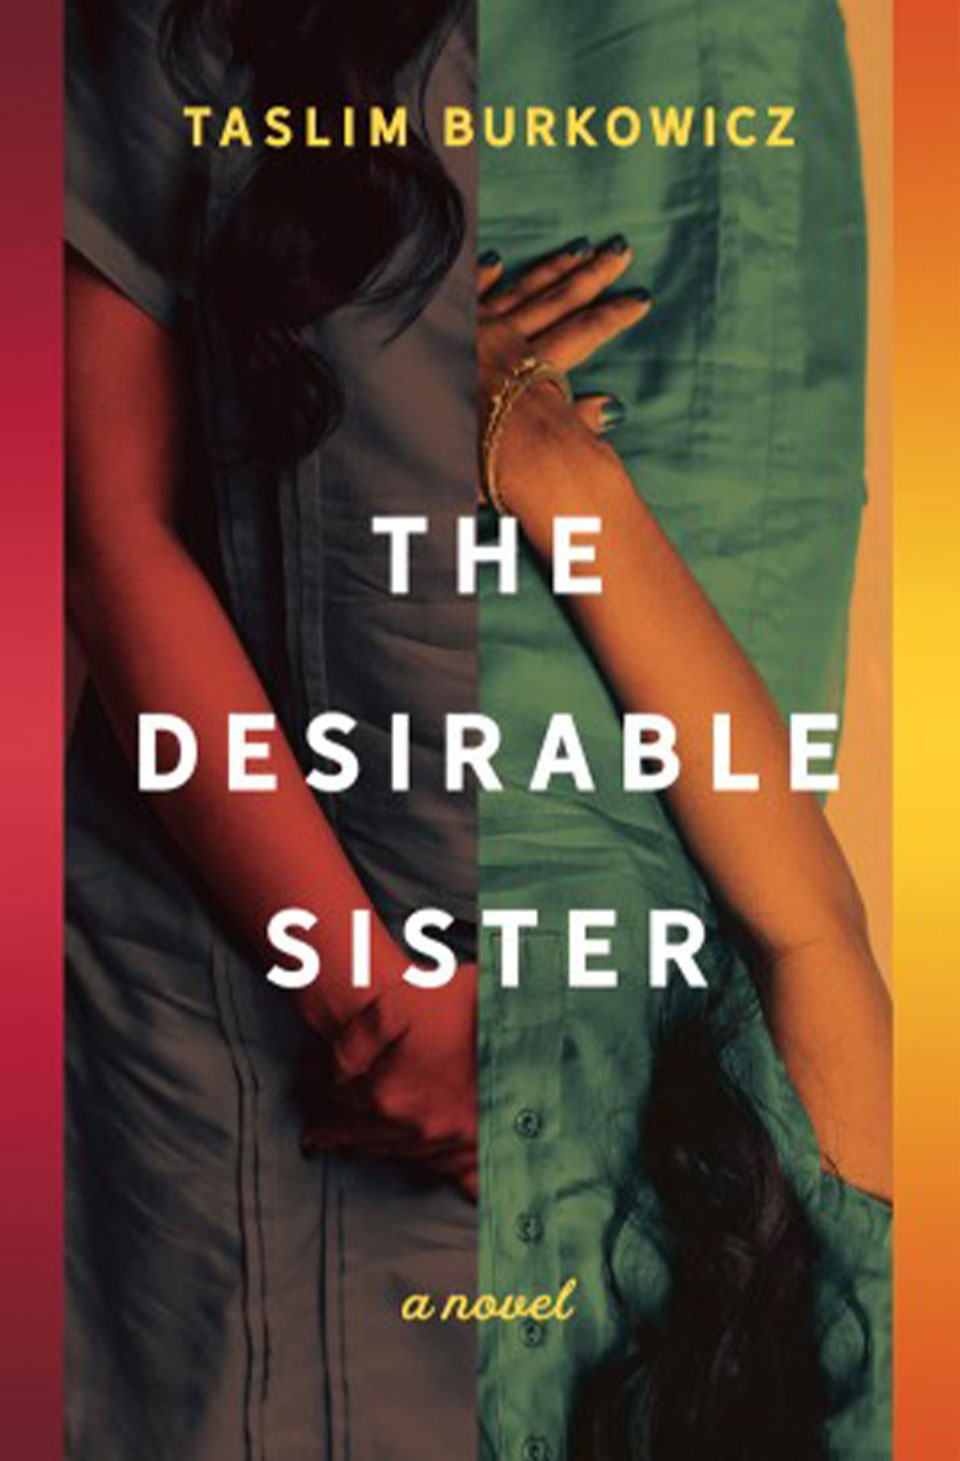 The Desirable Sister by Taslim Burkowicz